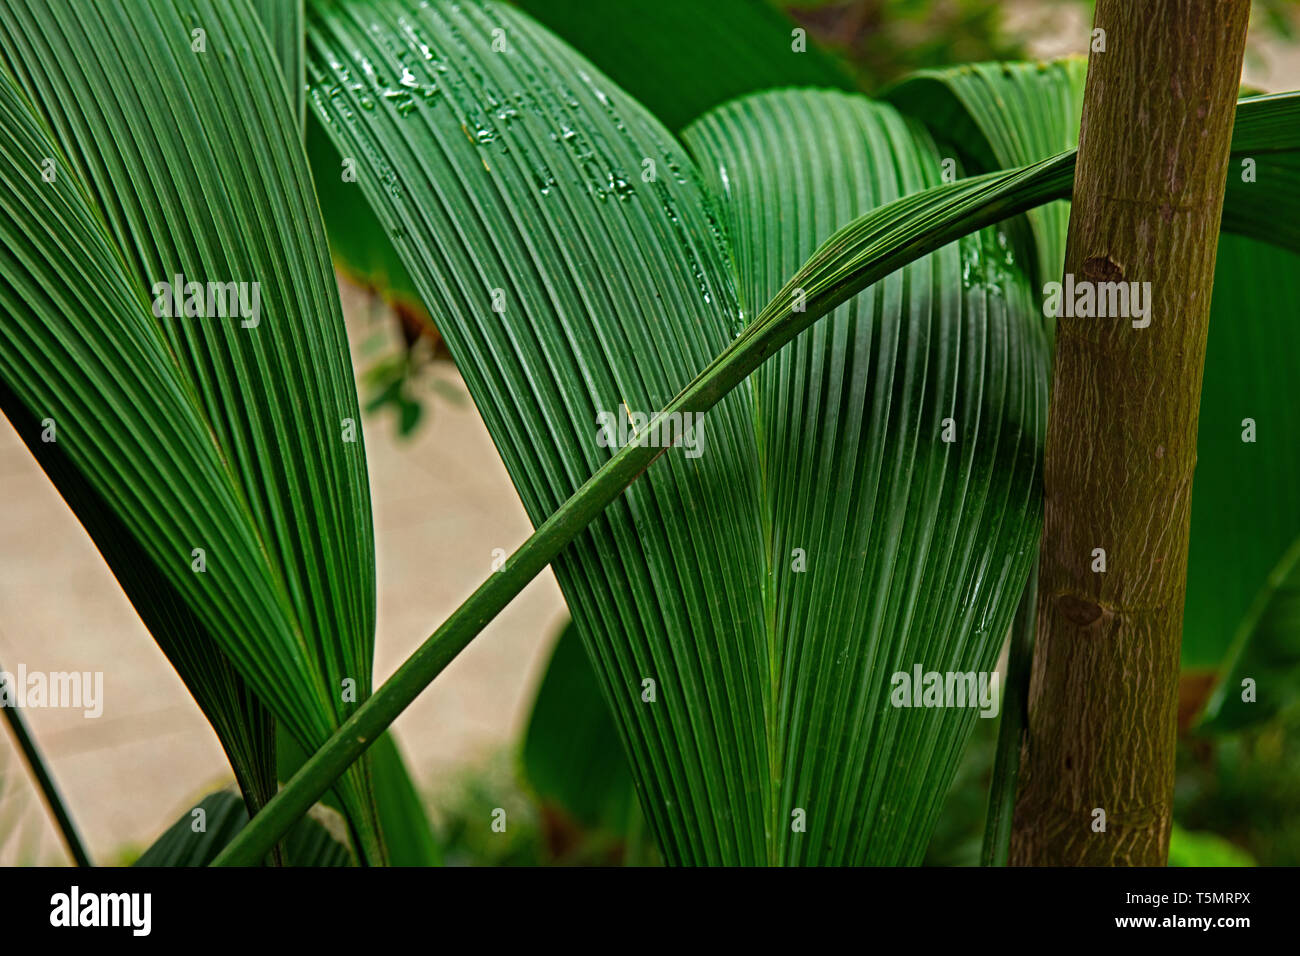 Pandanales High Resolution Stock Photography and Images - Alamy